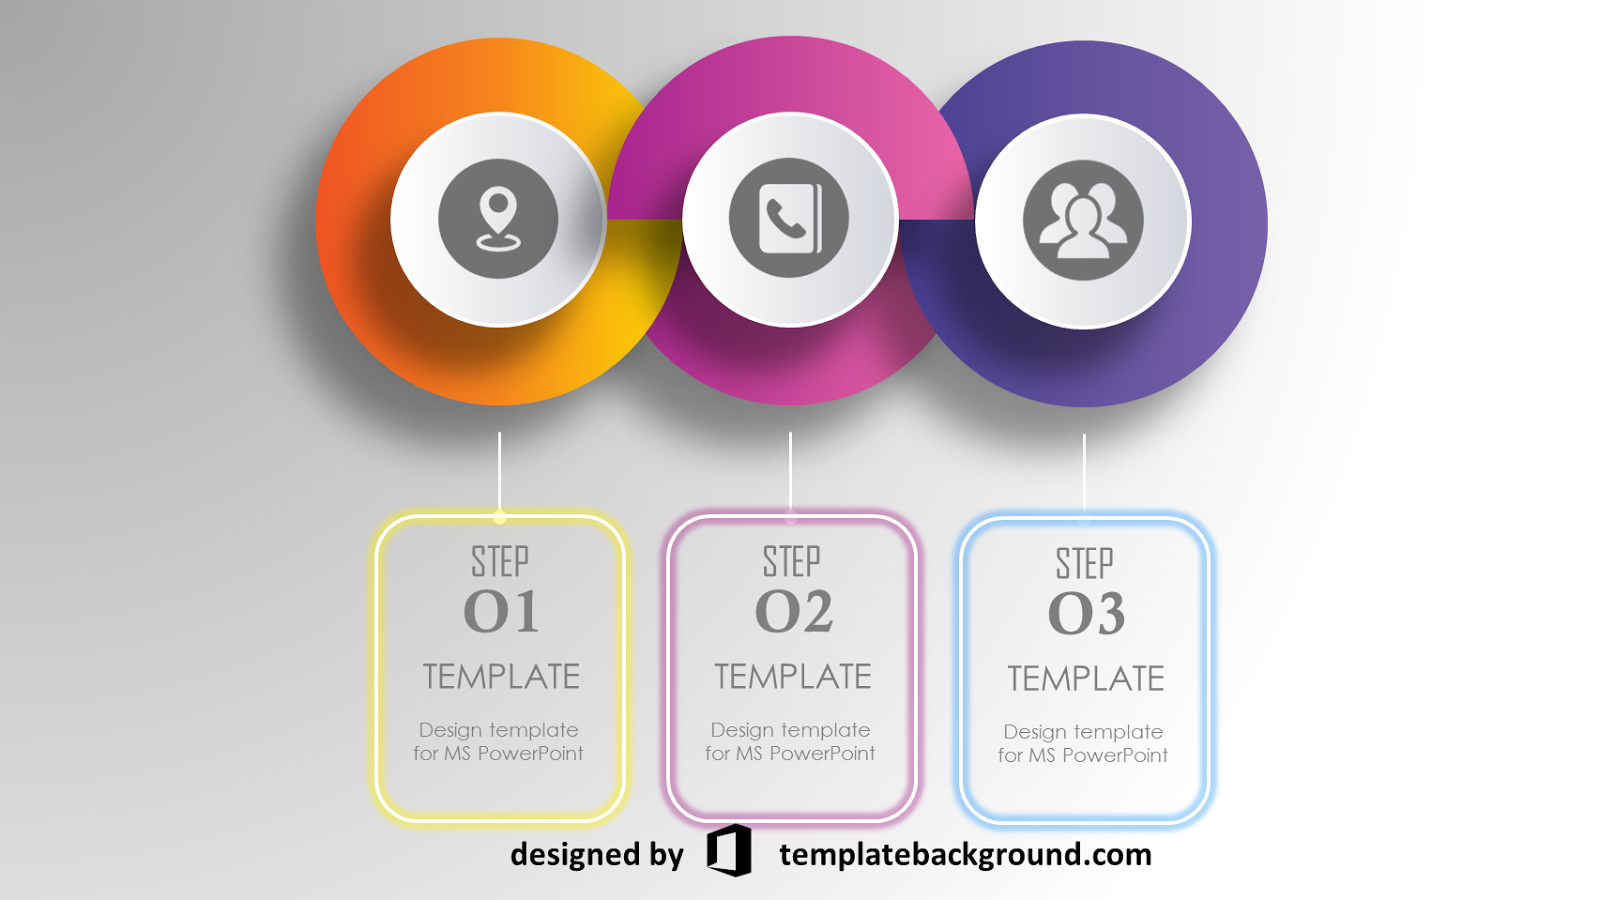 free 3d animated powerpoint templates download | tamplate ppt, Powerpoint templates